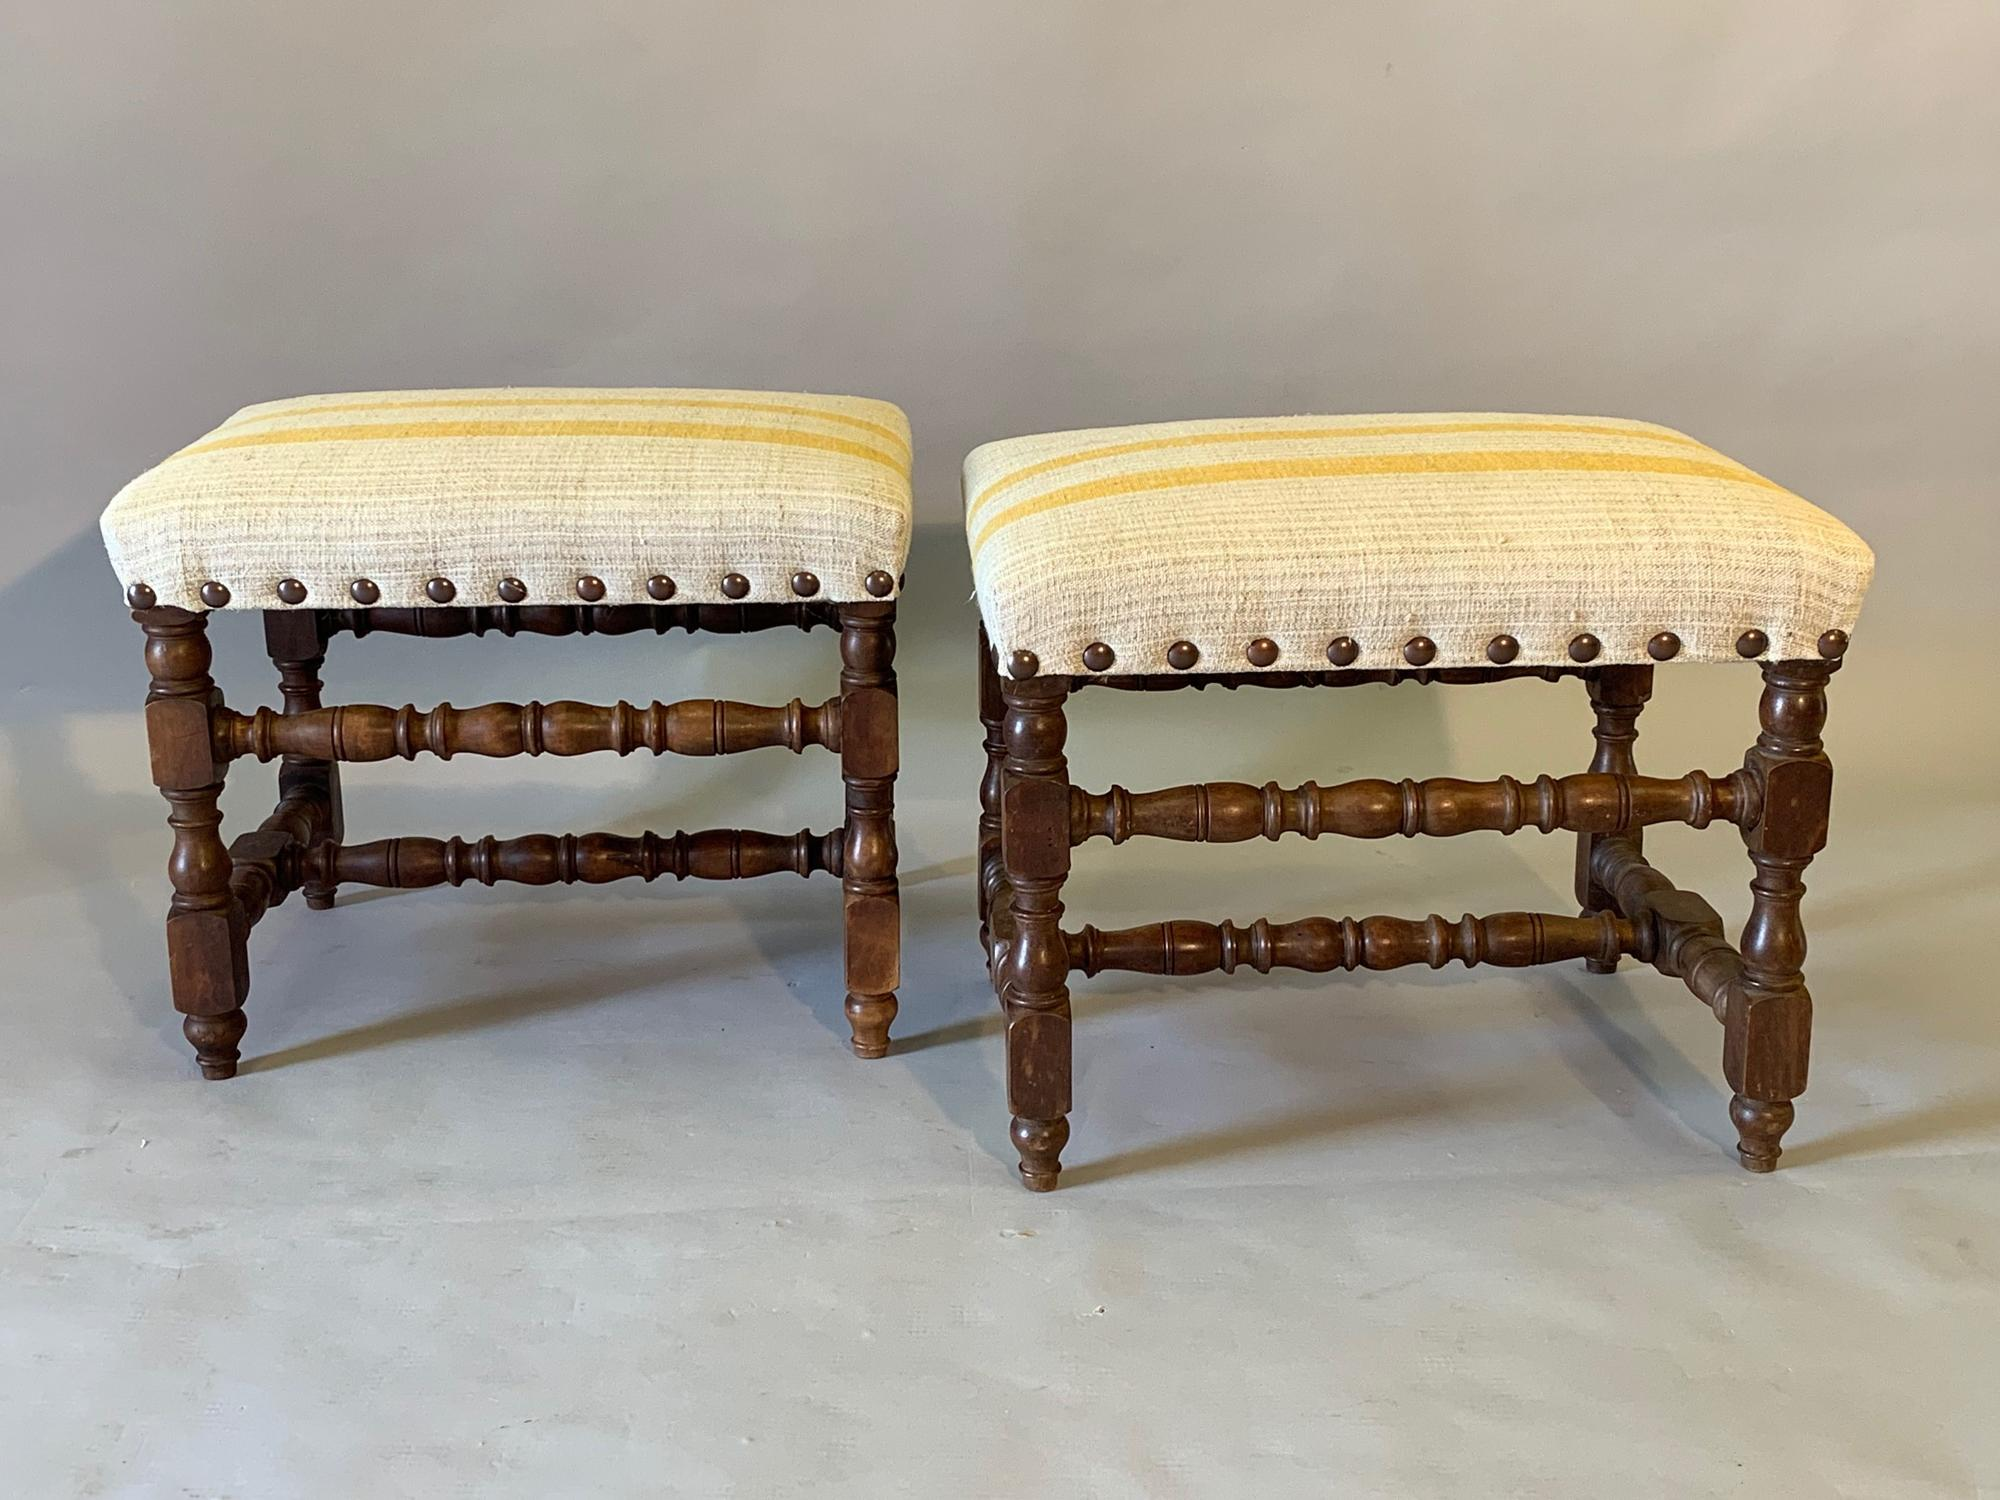 Pair of turned Walnut wood stools/seats